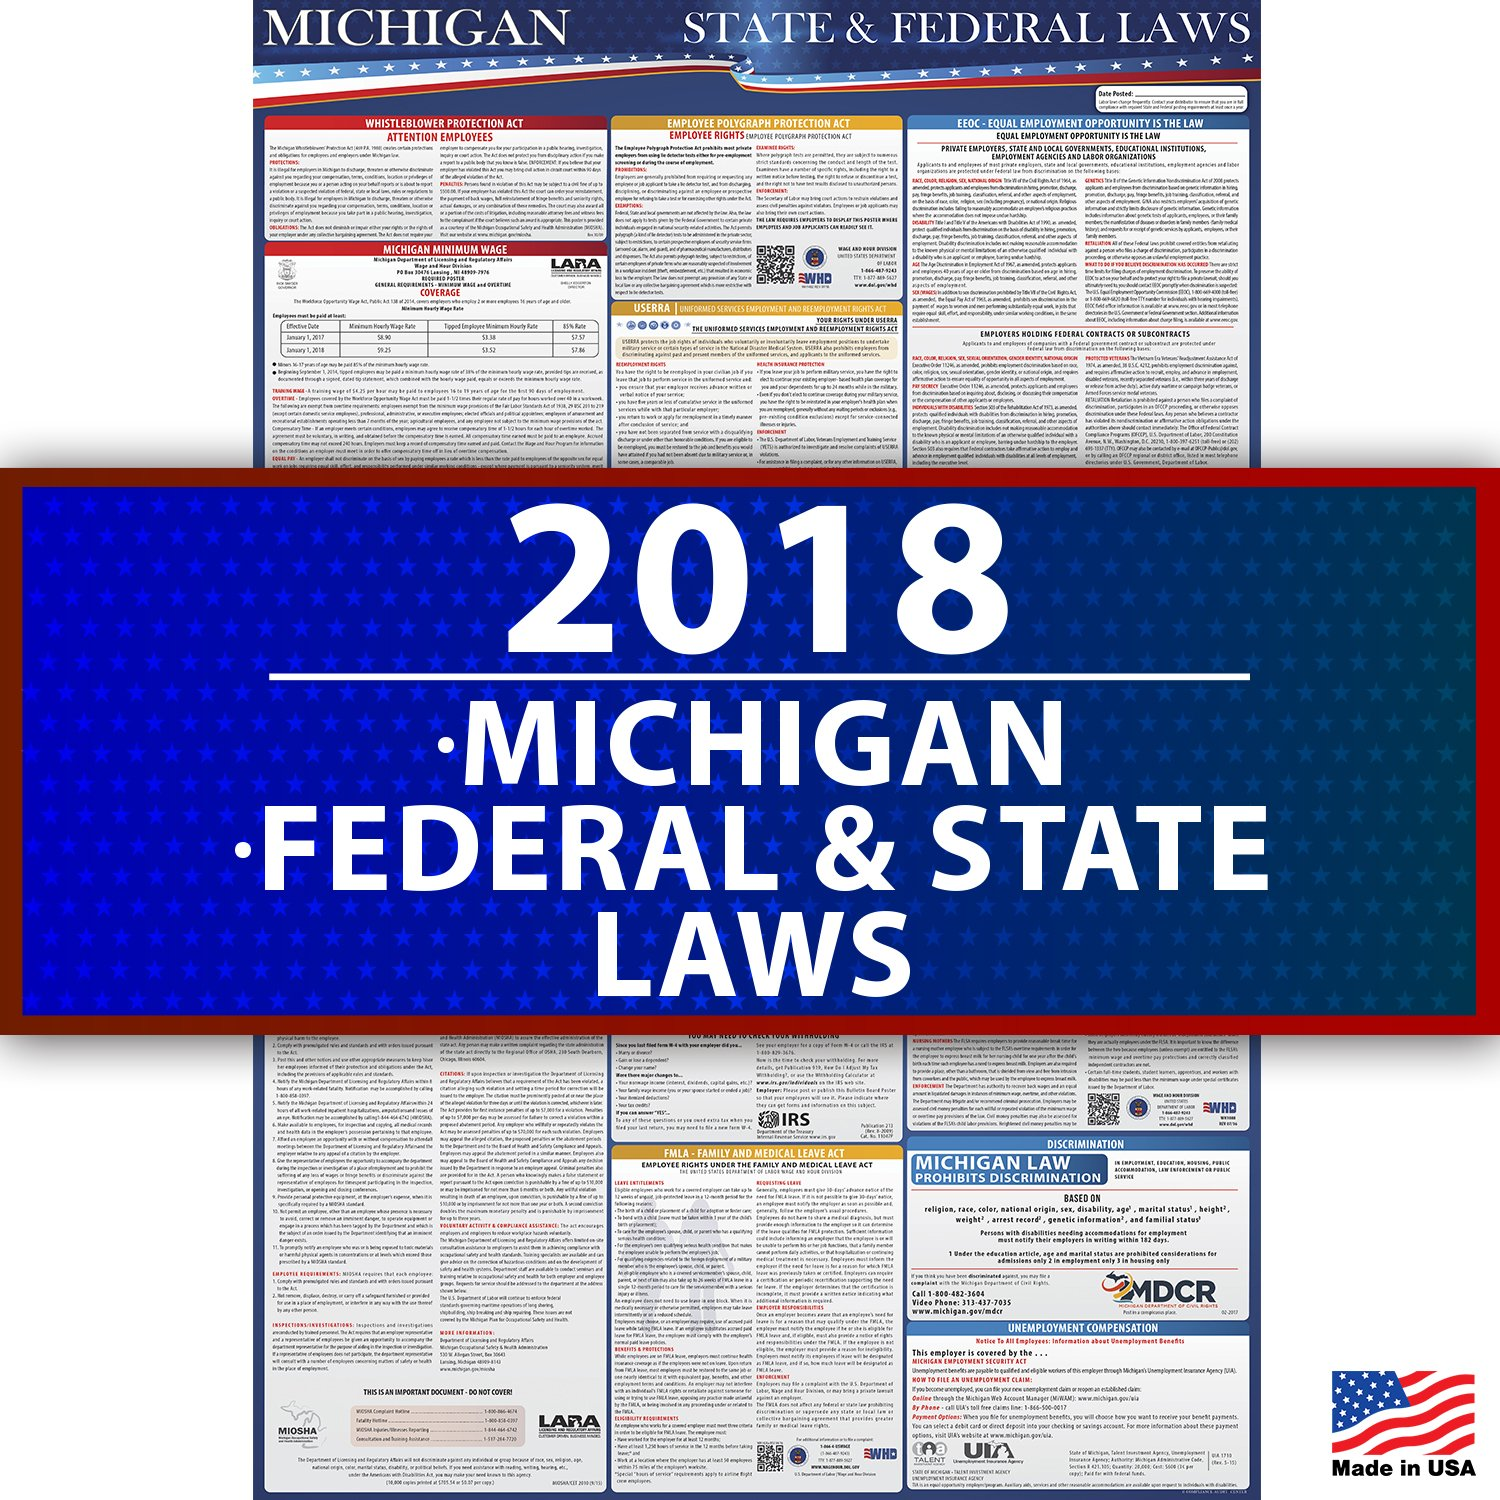 2018 Michigan State and Federal Labor Law Compliance Poster - OSHA Compliant 36'' x 24'' - UV Coated